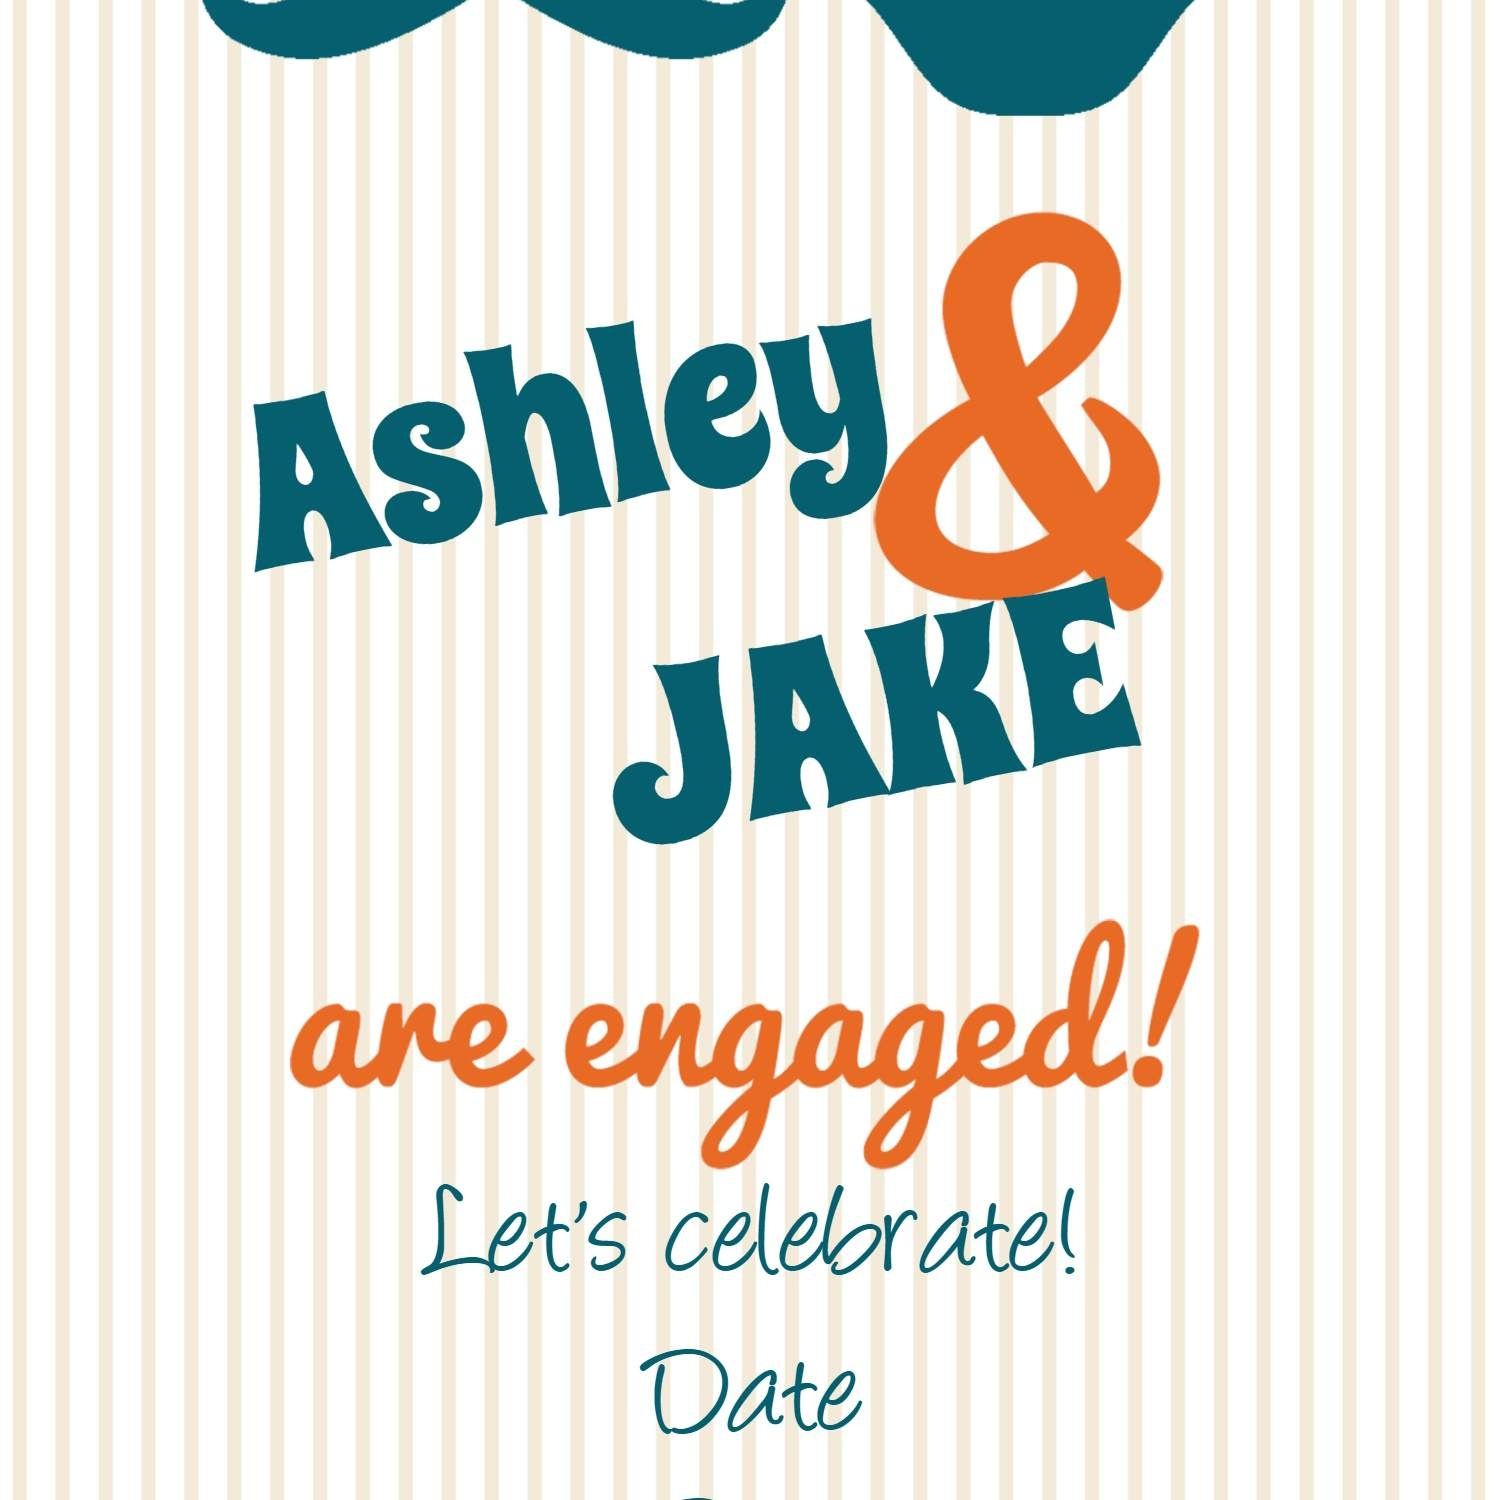 8 Printable Engagement Party Invitations - Free Printable Engagement Invitations